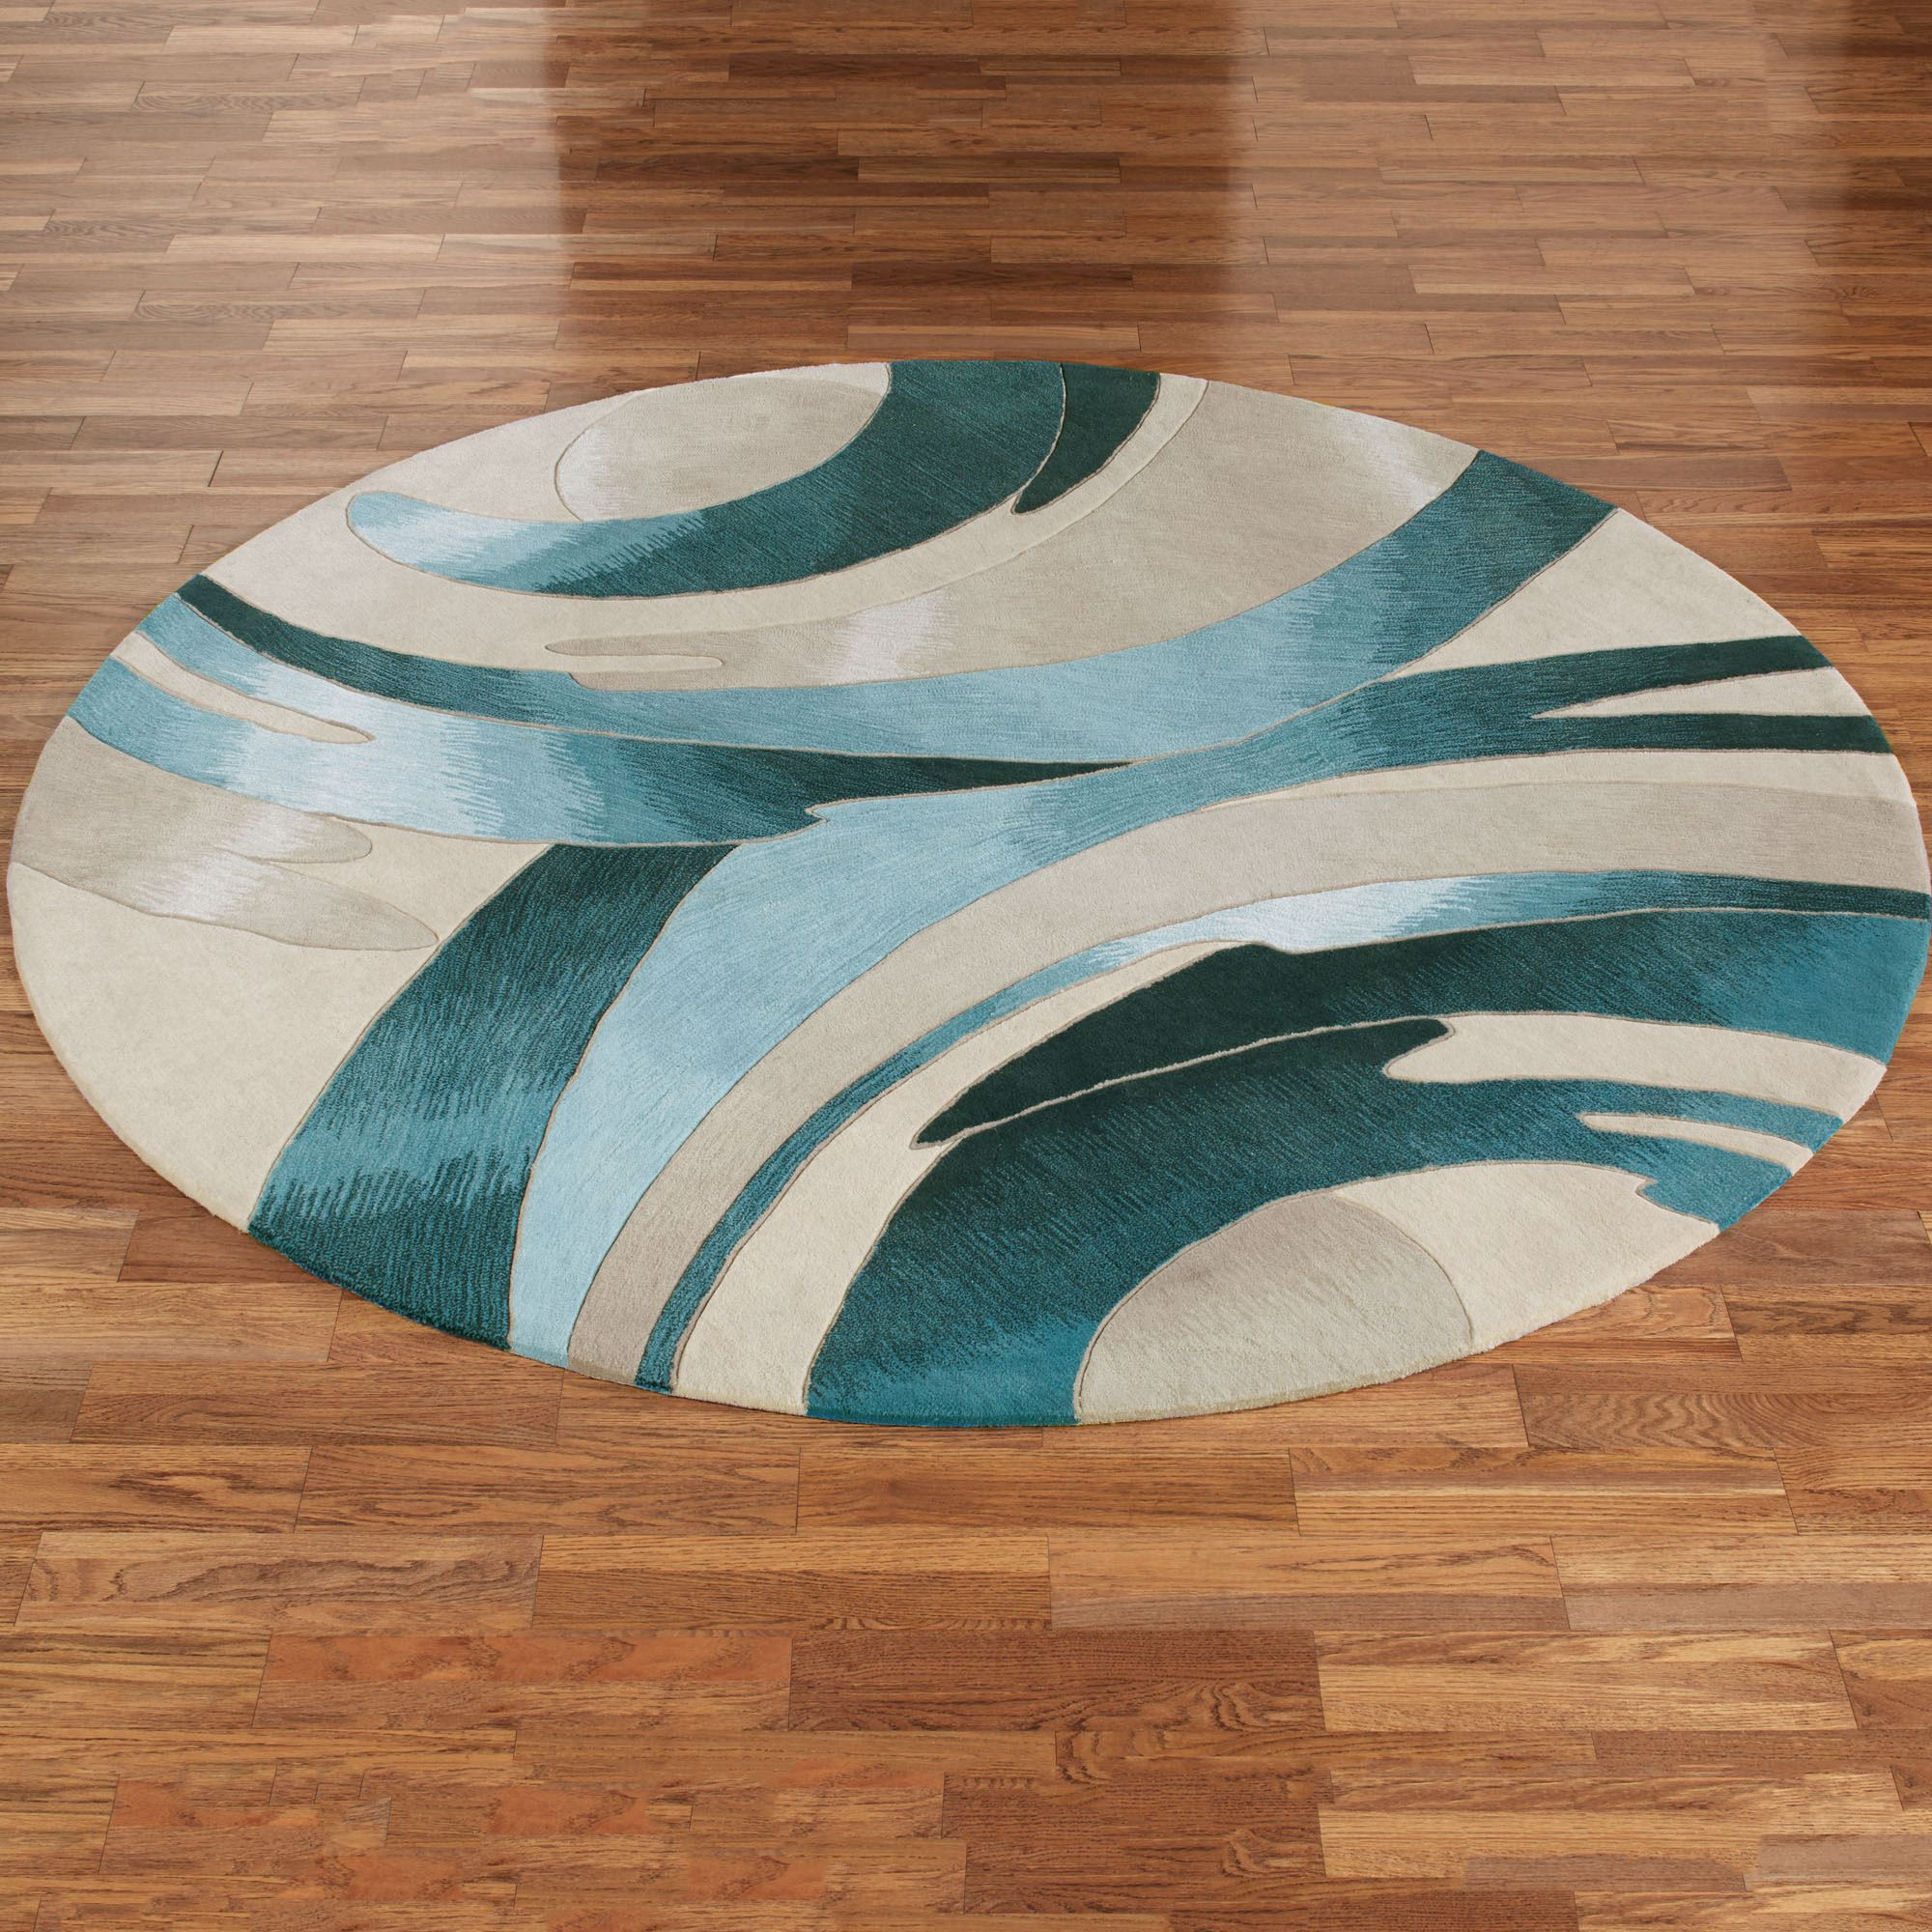 Circle rugs are the best choice